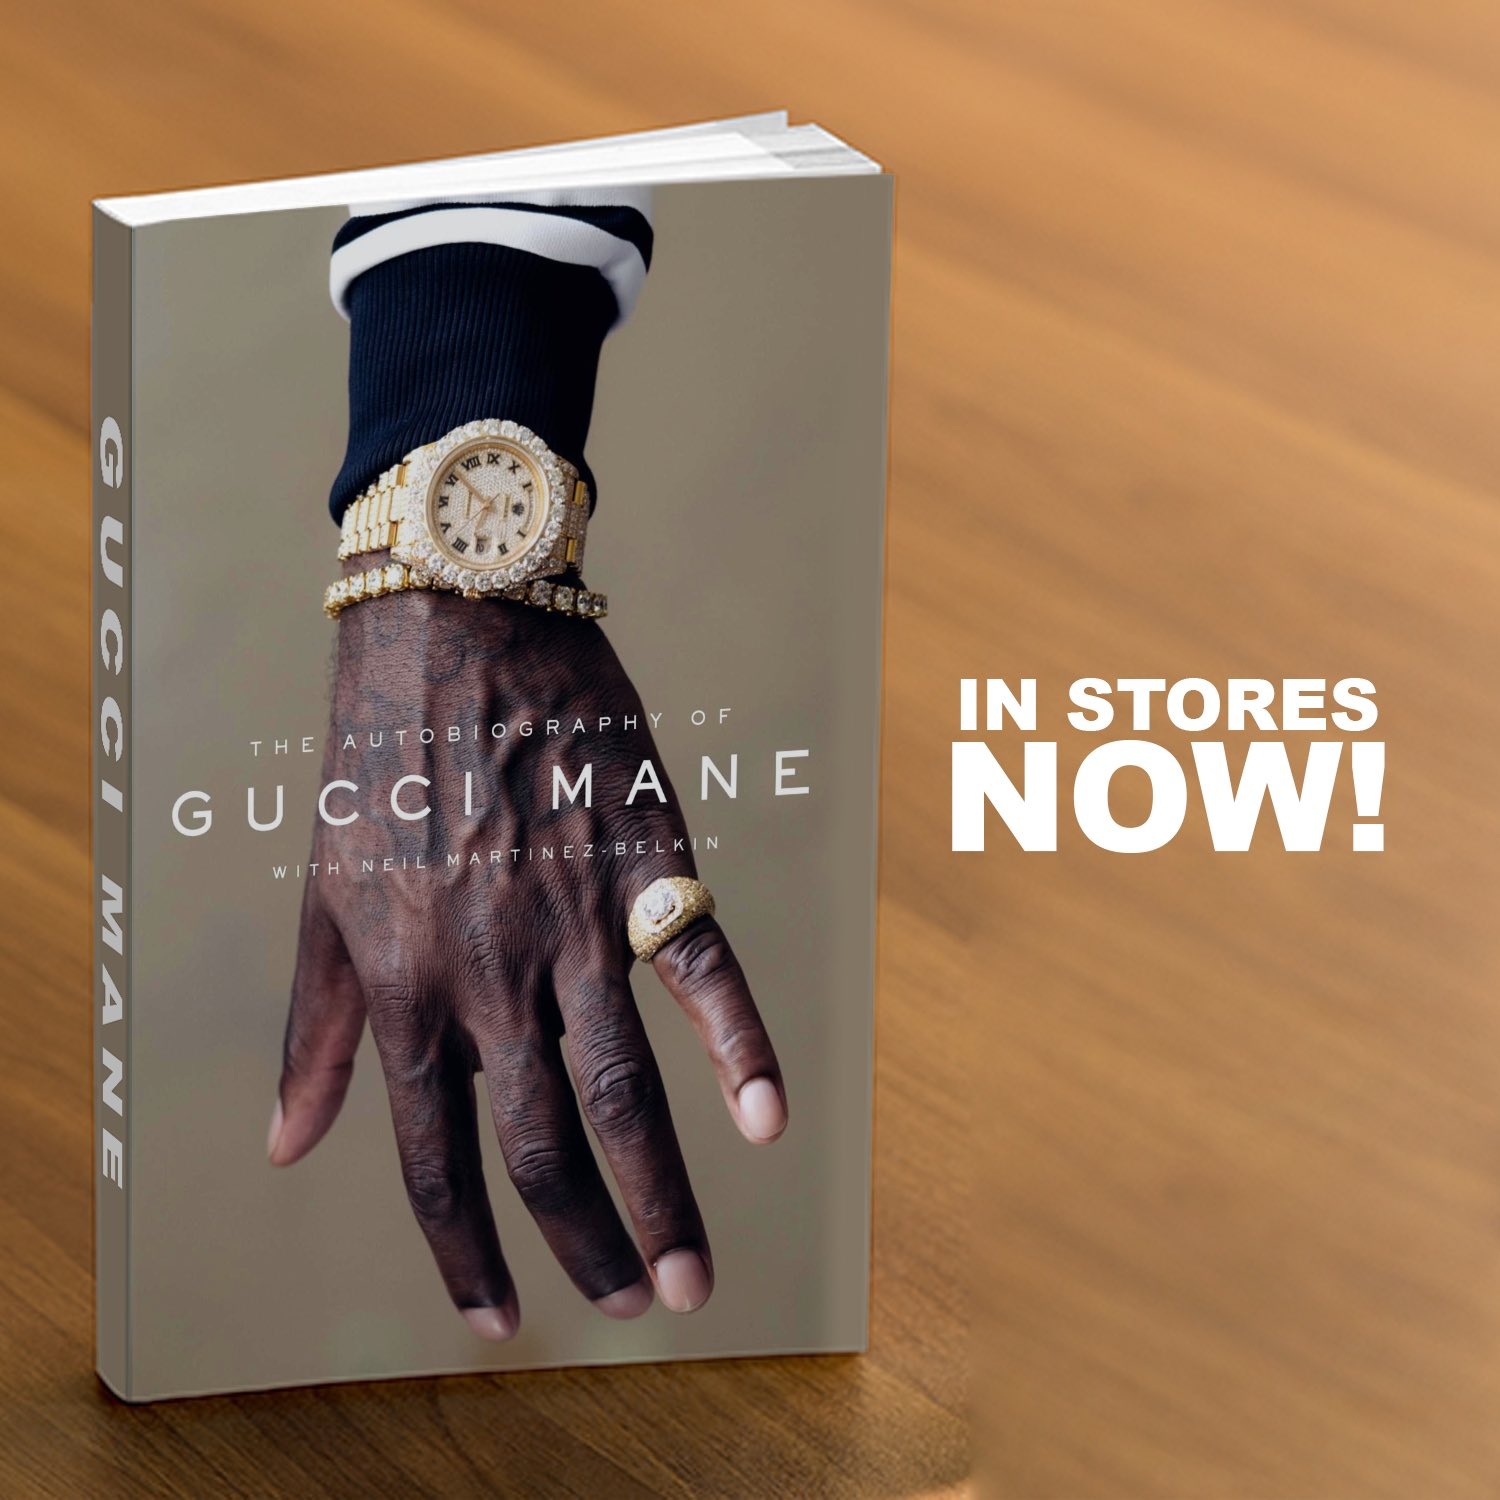 my boy put a movie into a book @gucci1017 ���� https://t.co/O1oGRUM8Pv